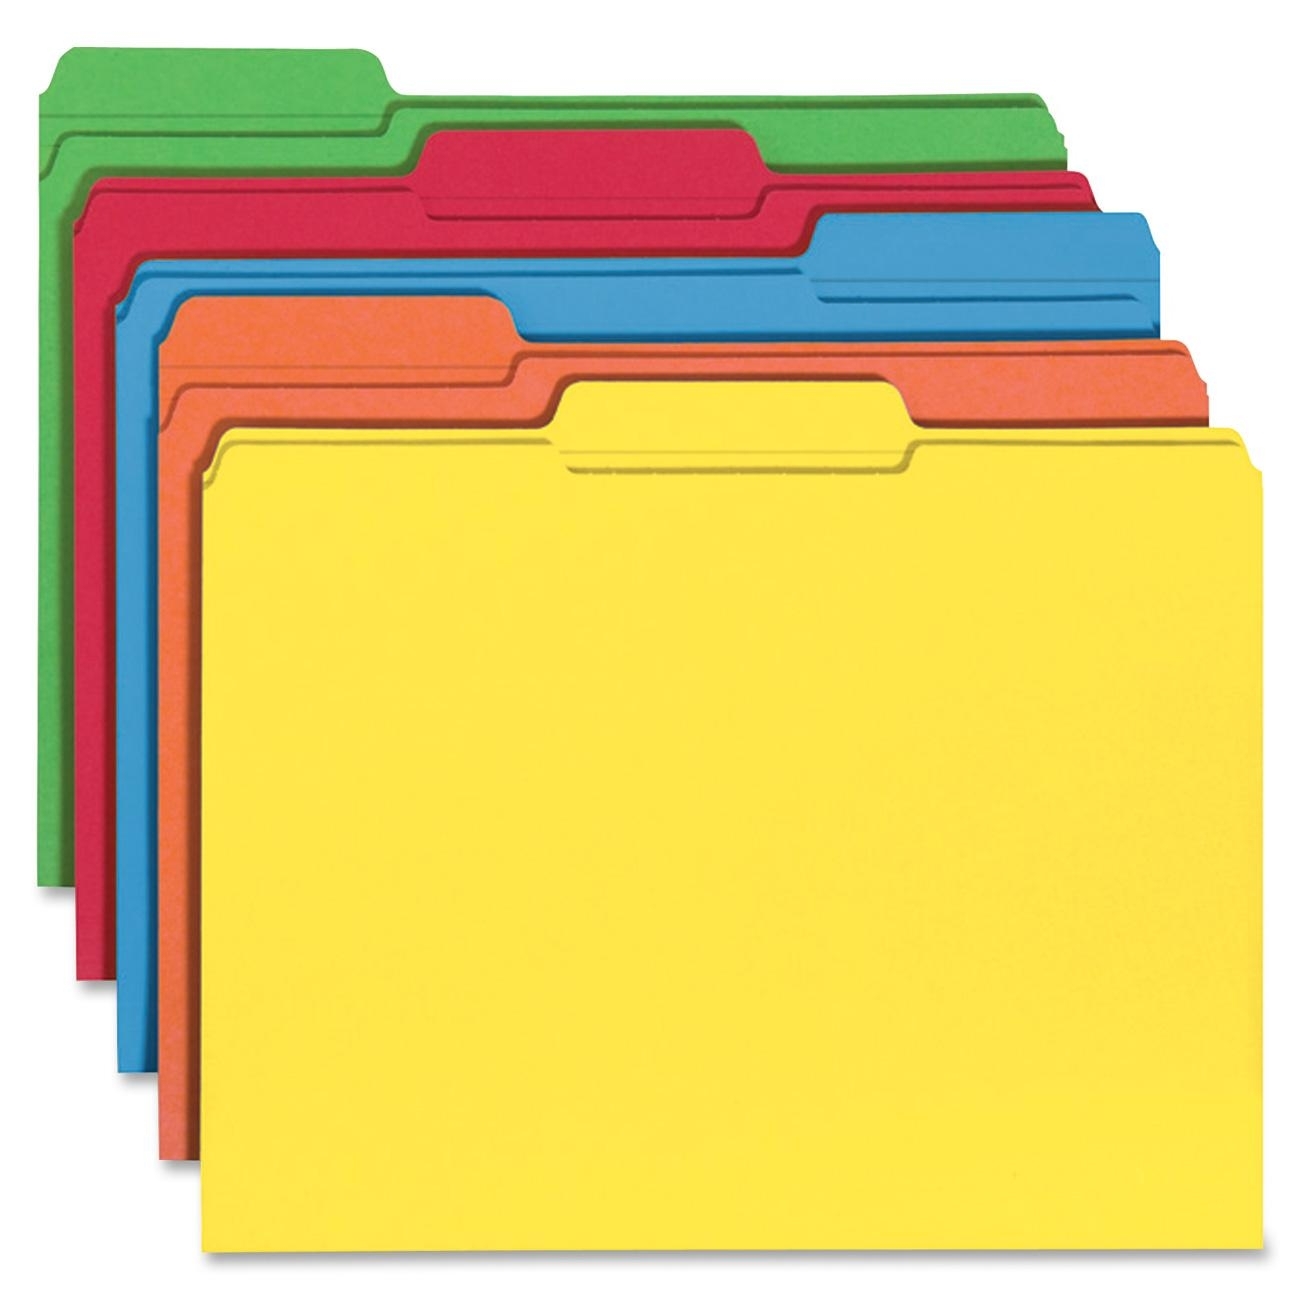 Organizing Your Home Records. Organizing Your Home Records. Pocket Folder Clipart ...